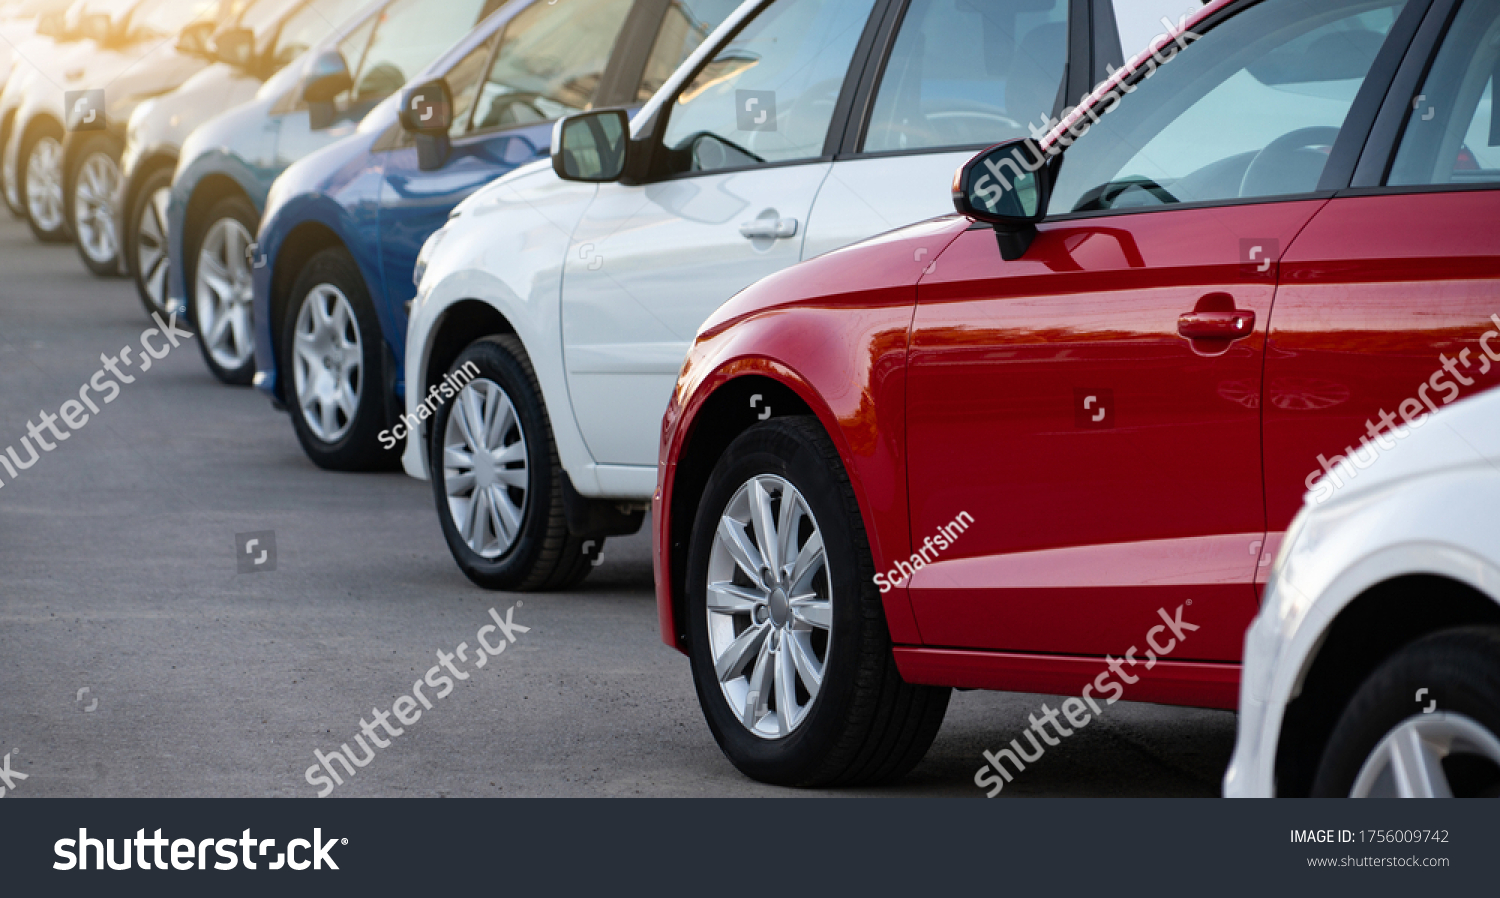 Cars in a row. Used car sales #1756009742